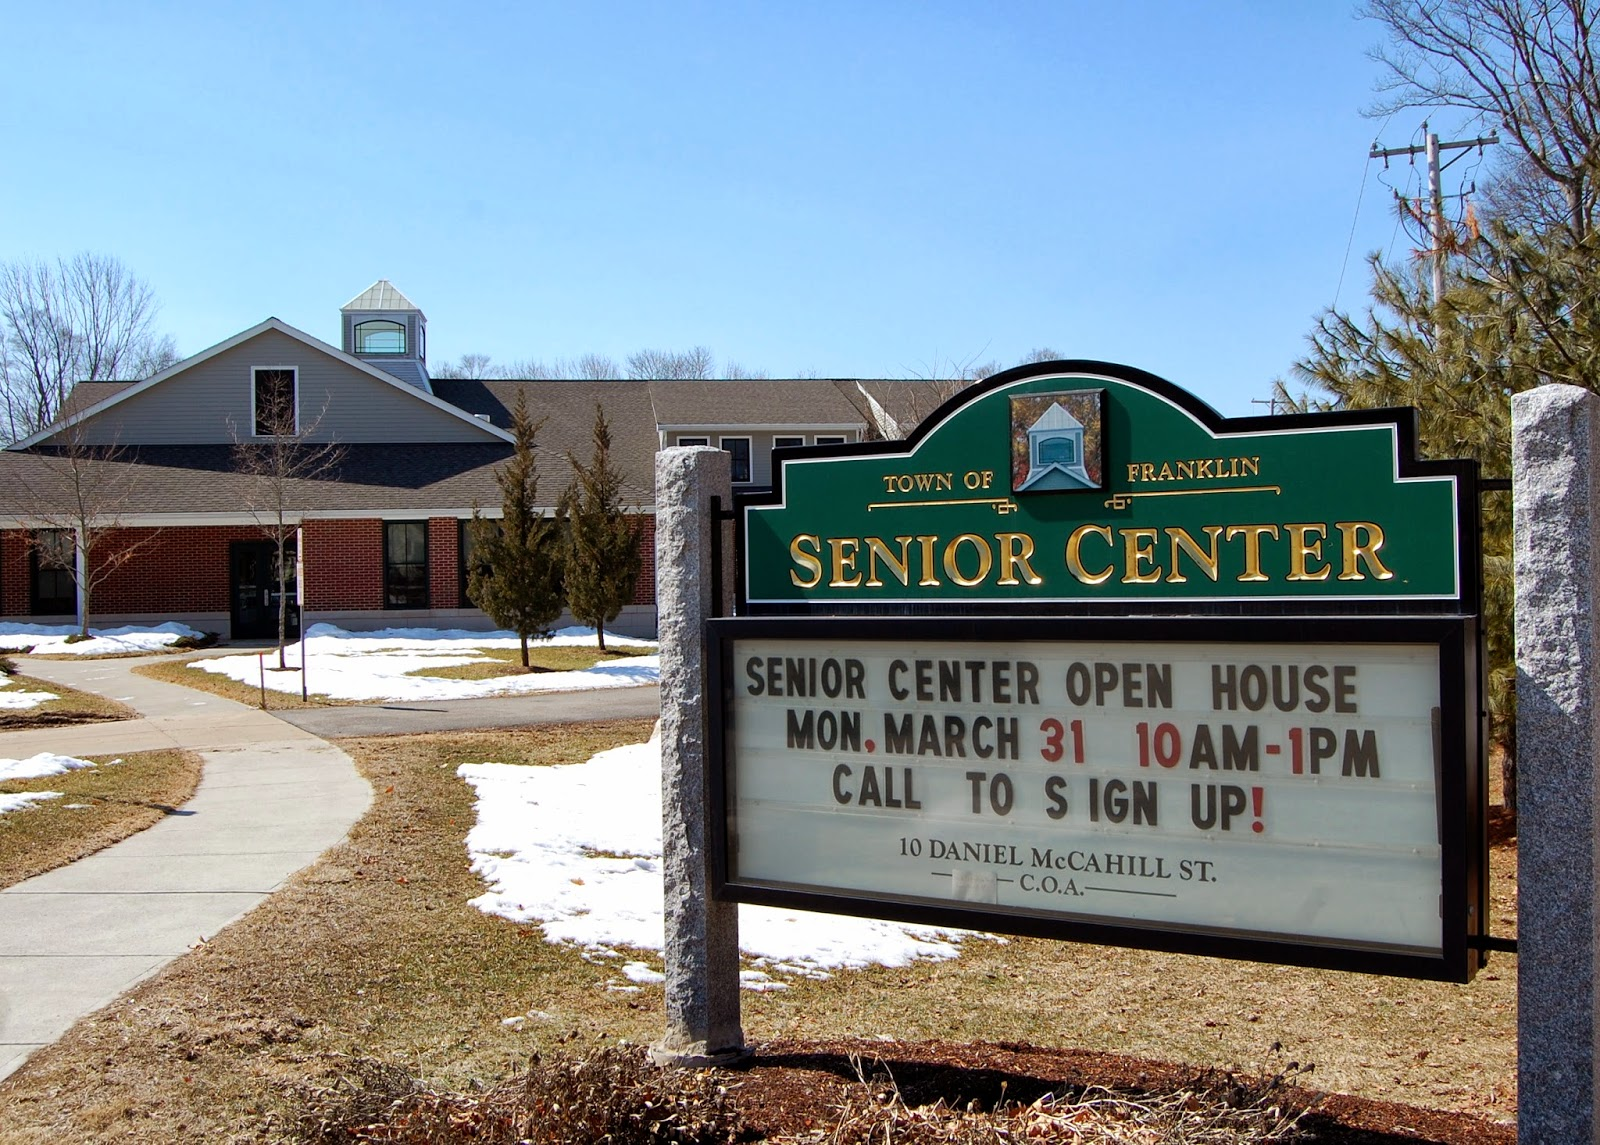 Senior Center - Open House Mar 31